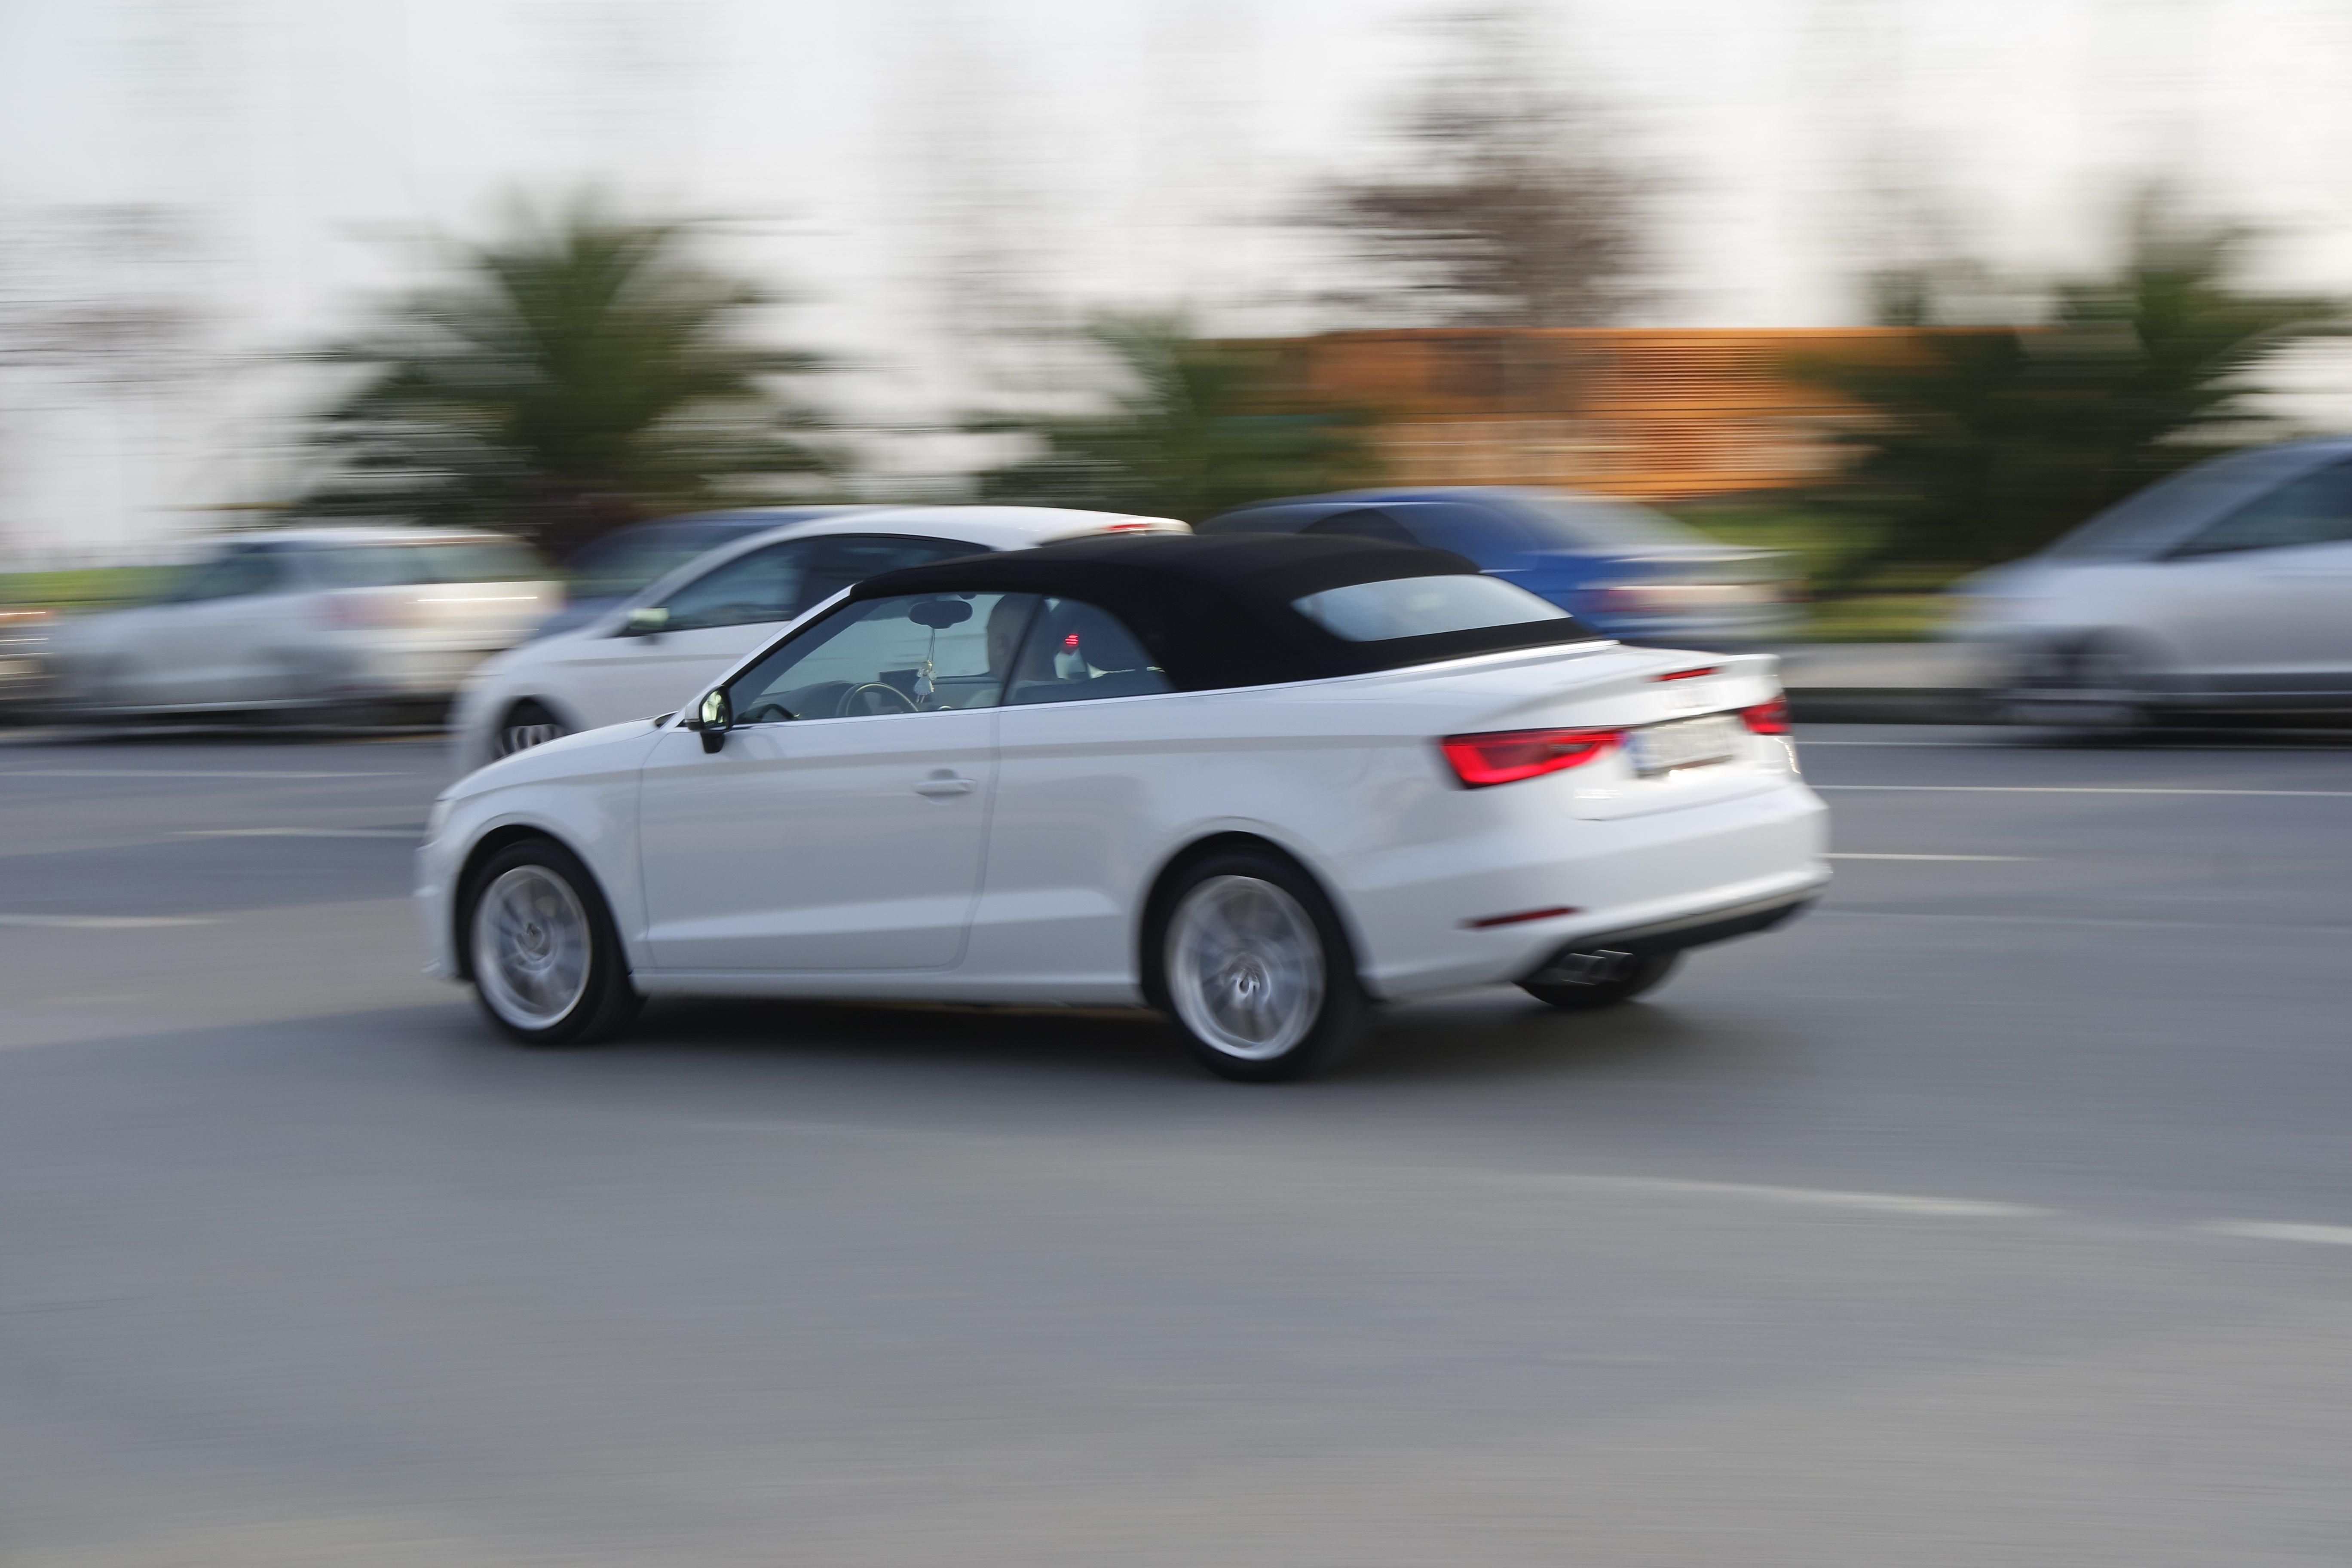 Car Driving Fast, Automobile, Car, Driving, Fast, HQ Photo